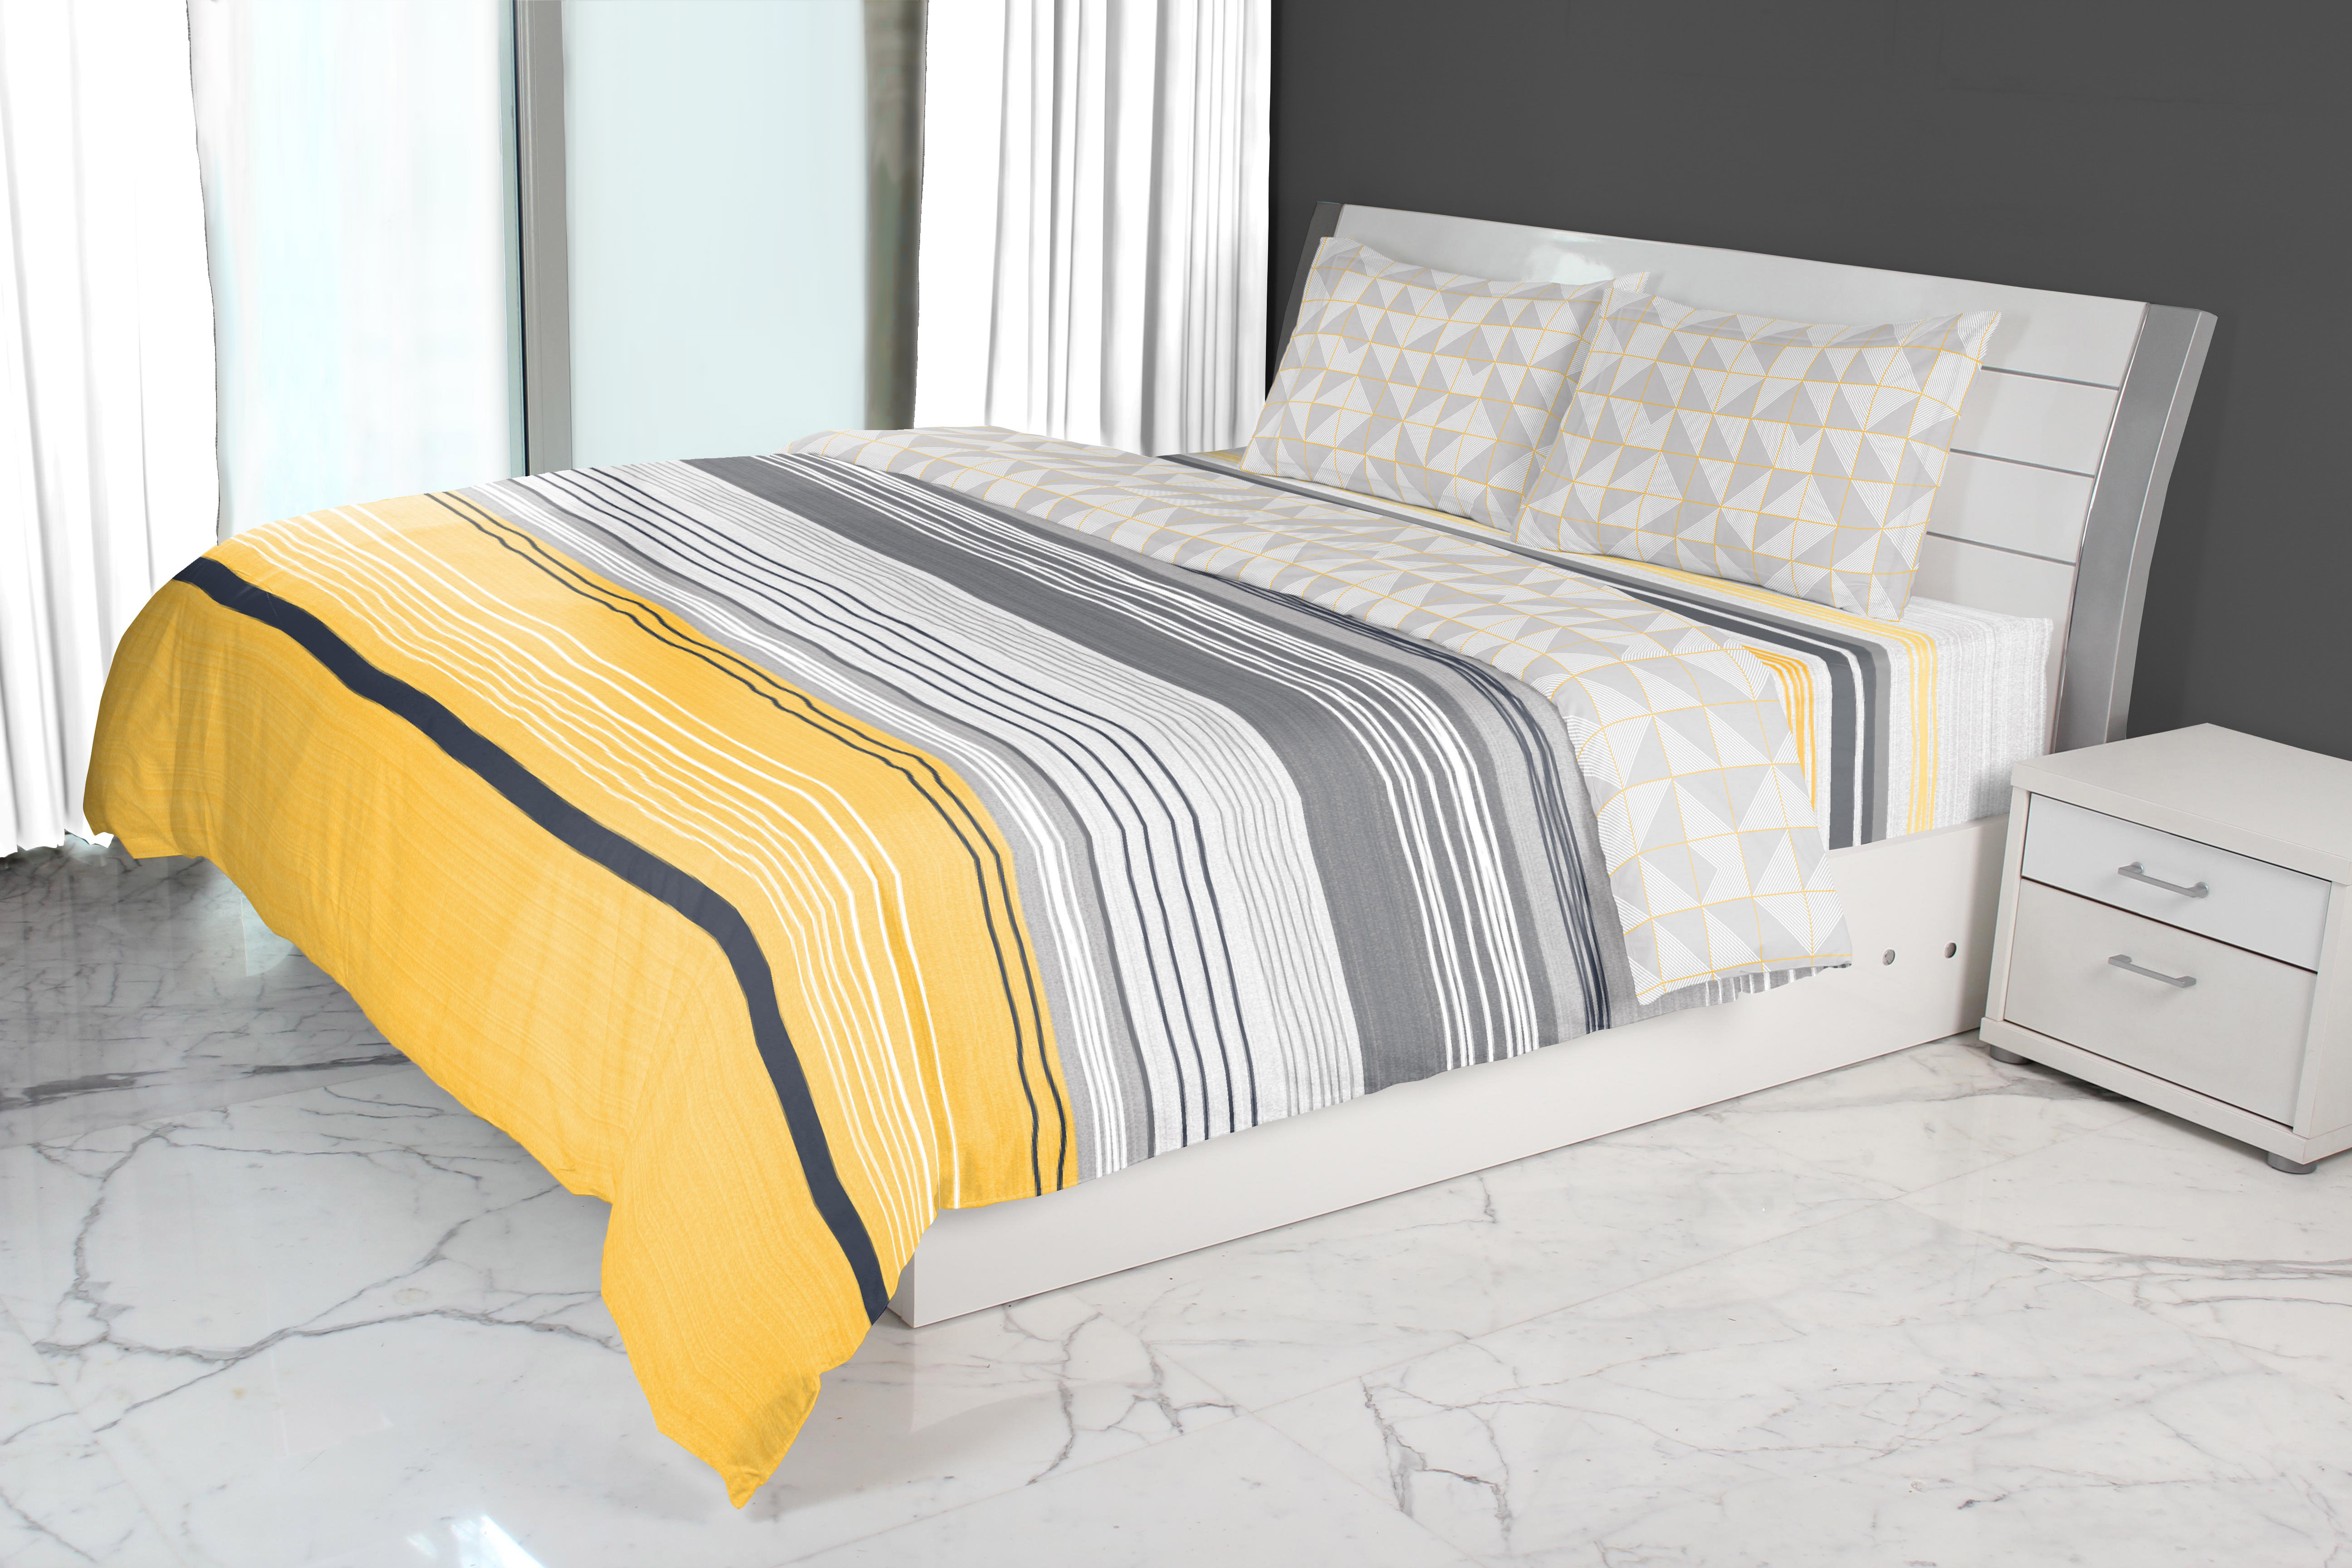 Emilia Double Comforter Grey Yellow Cotton Comforters in Grey Yellow Colour by Living Essence